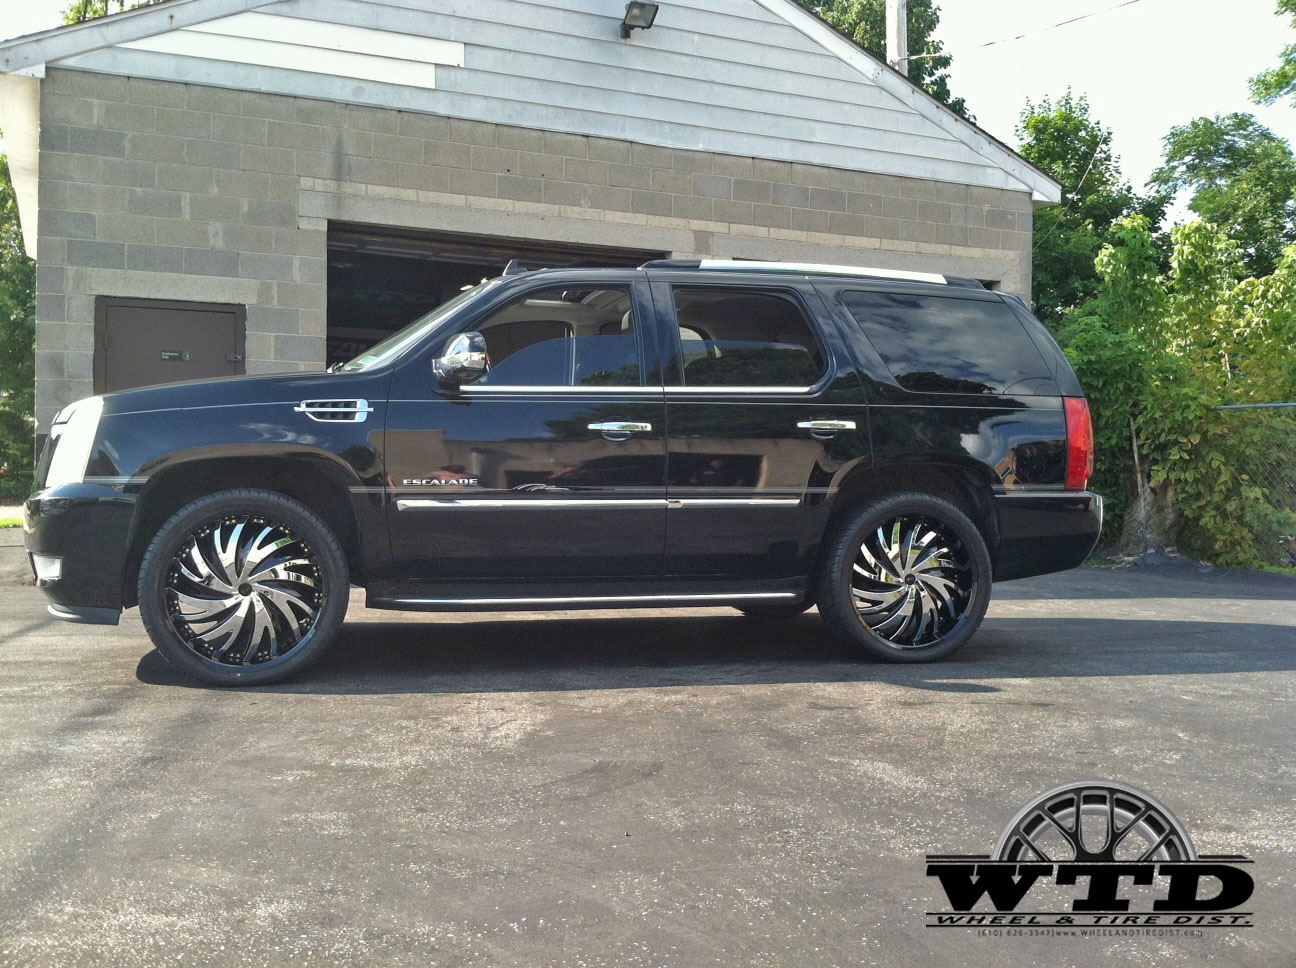 Vogue Tires For Cadillac Dts Automotive Vehicles